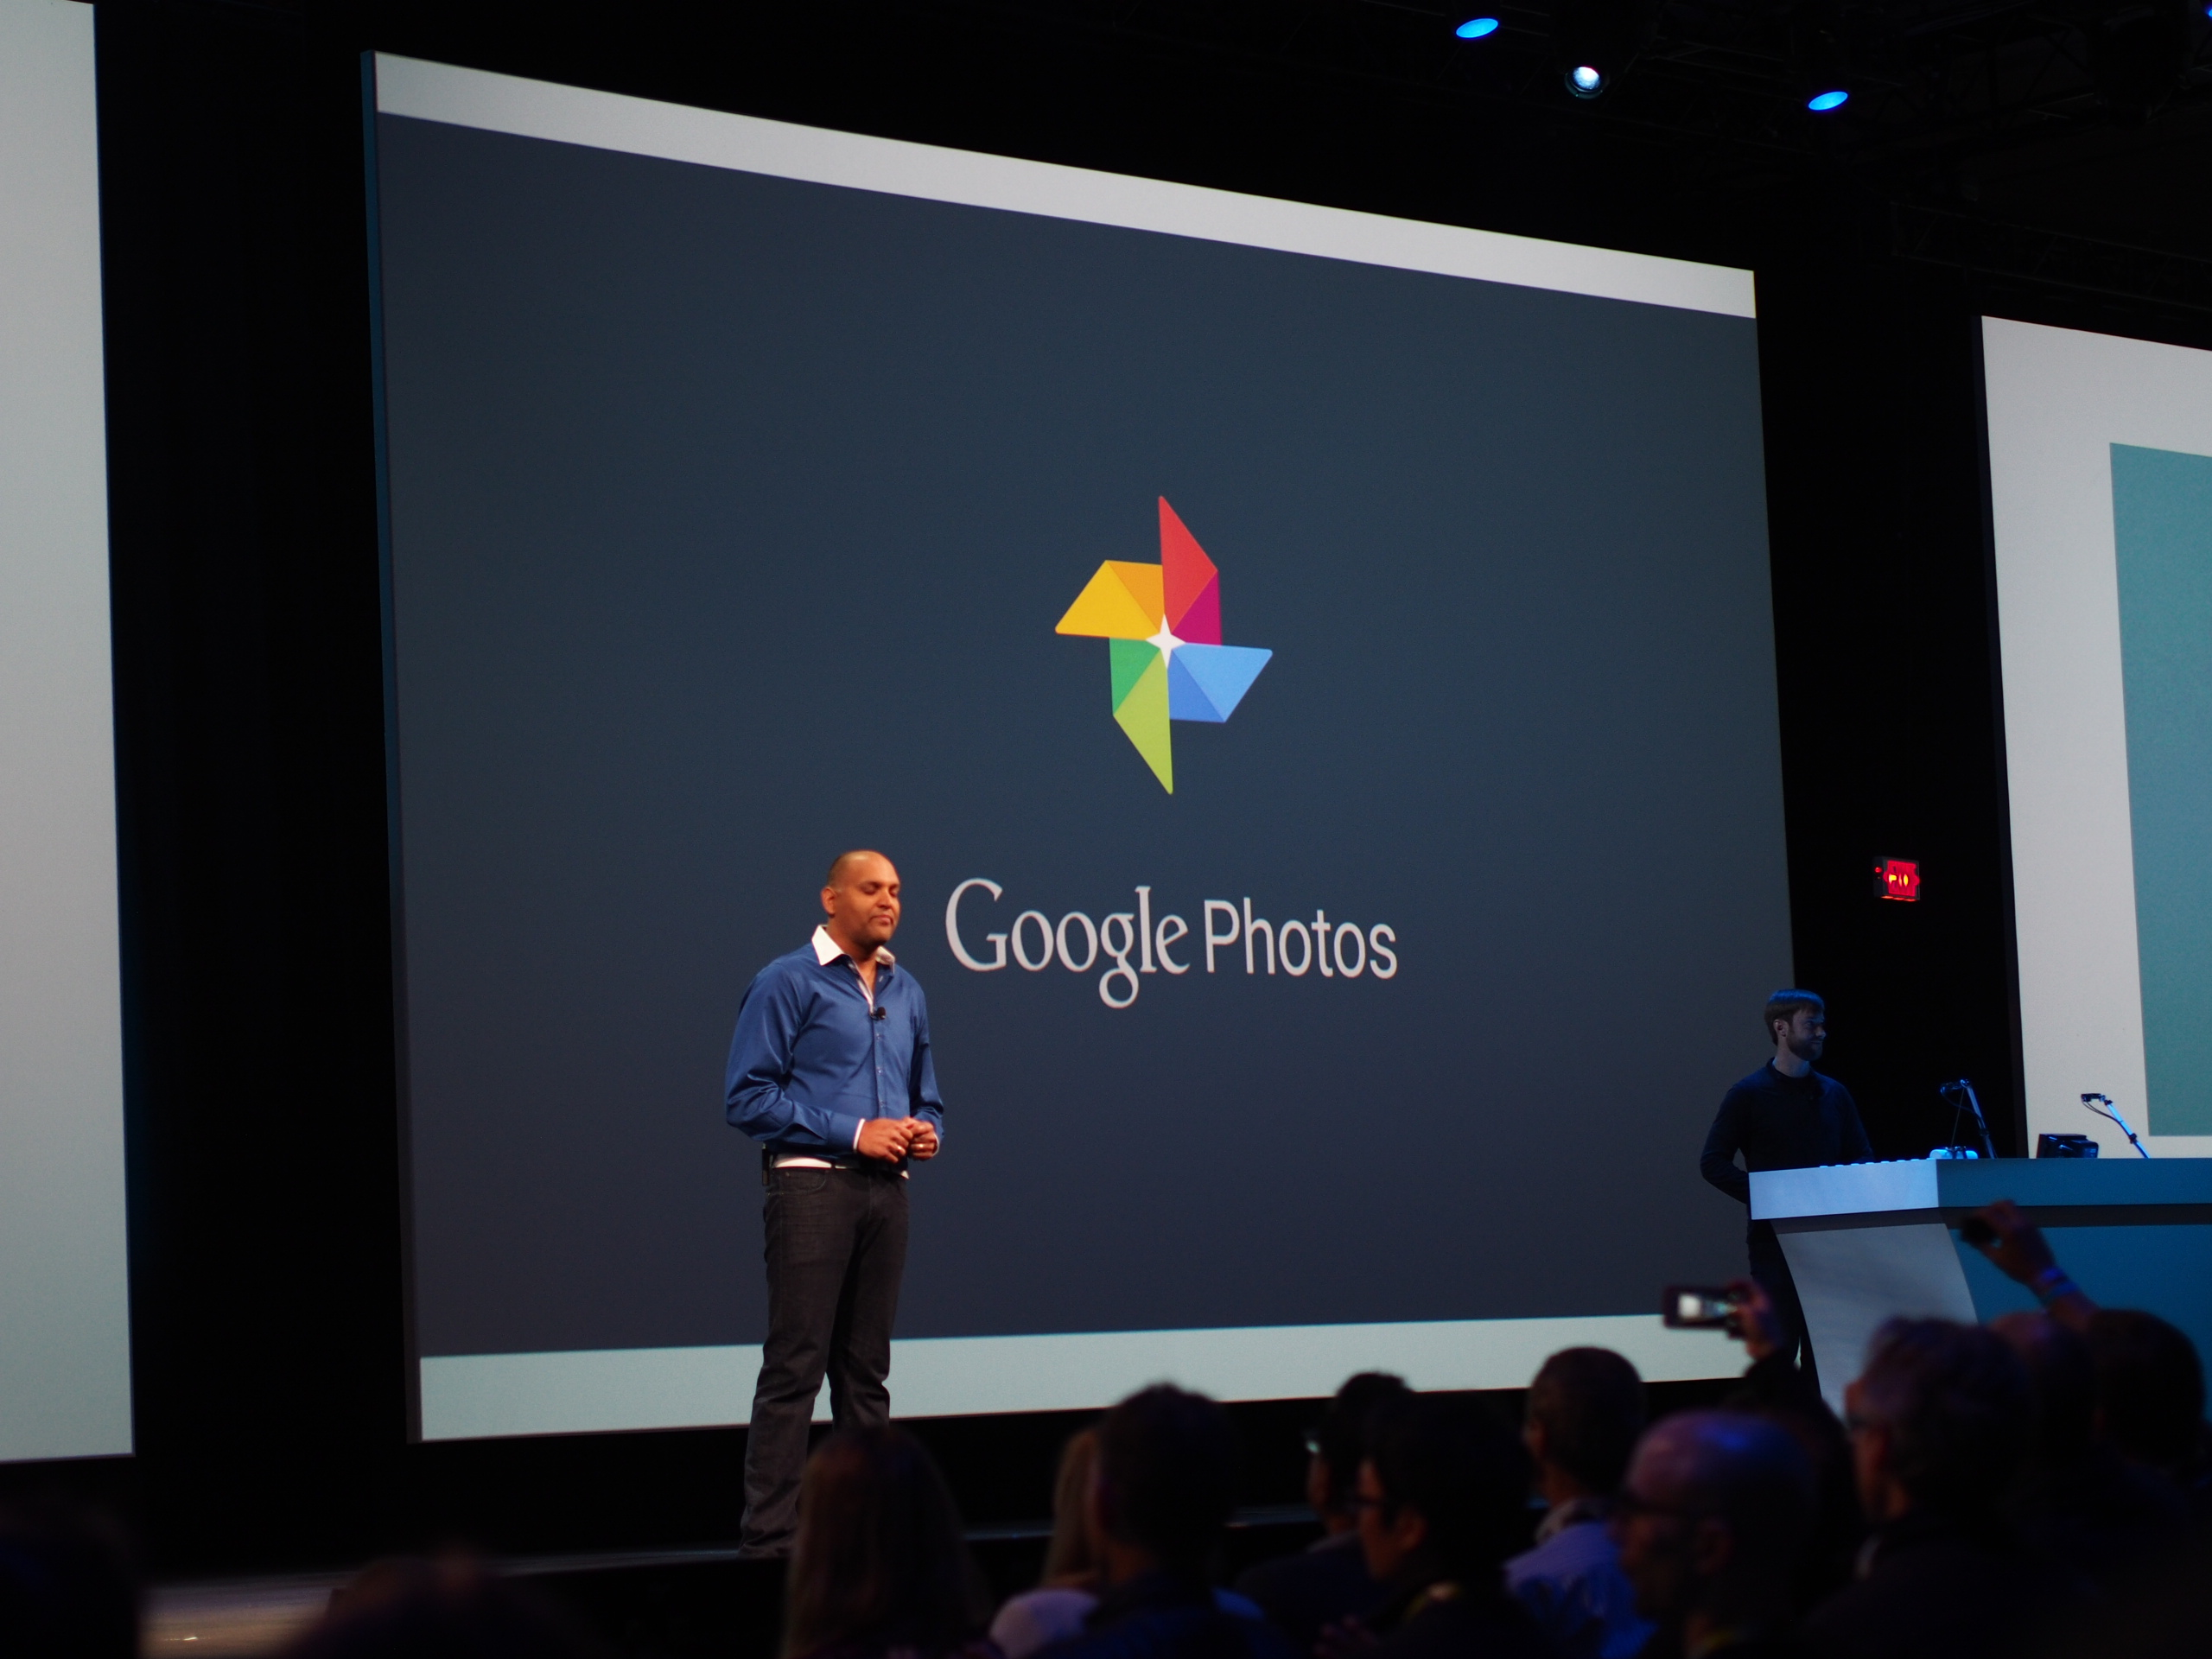 Google Photos behind the app -- scanning makes it special